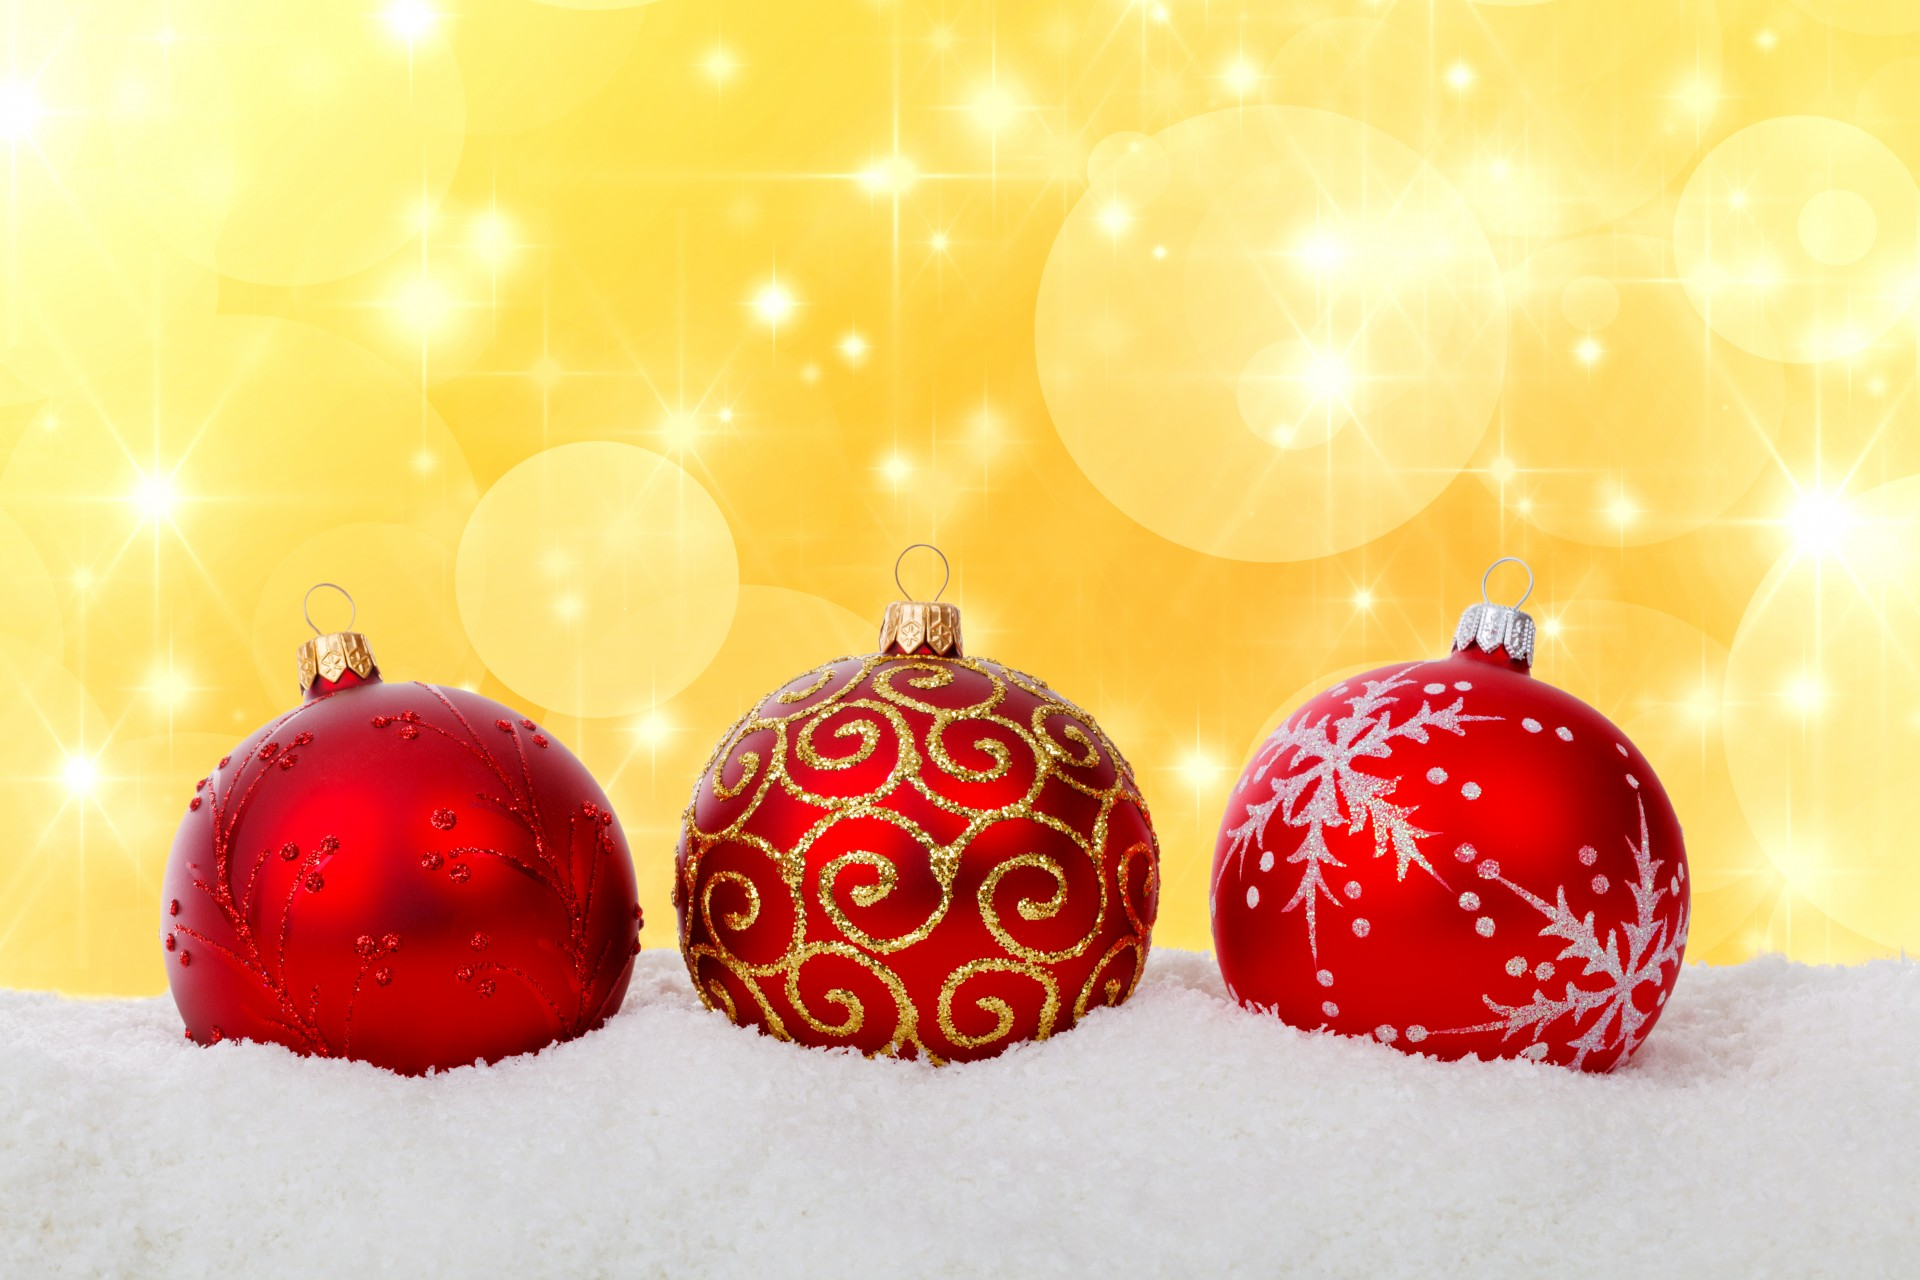 Red Christmas Balls In Snow Free Stock Photo - Public Domain Pictures